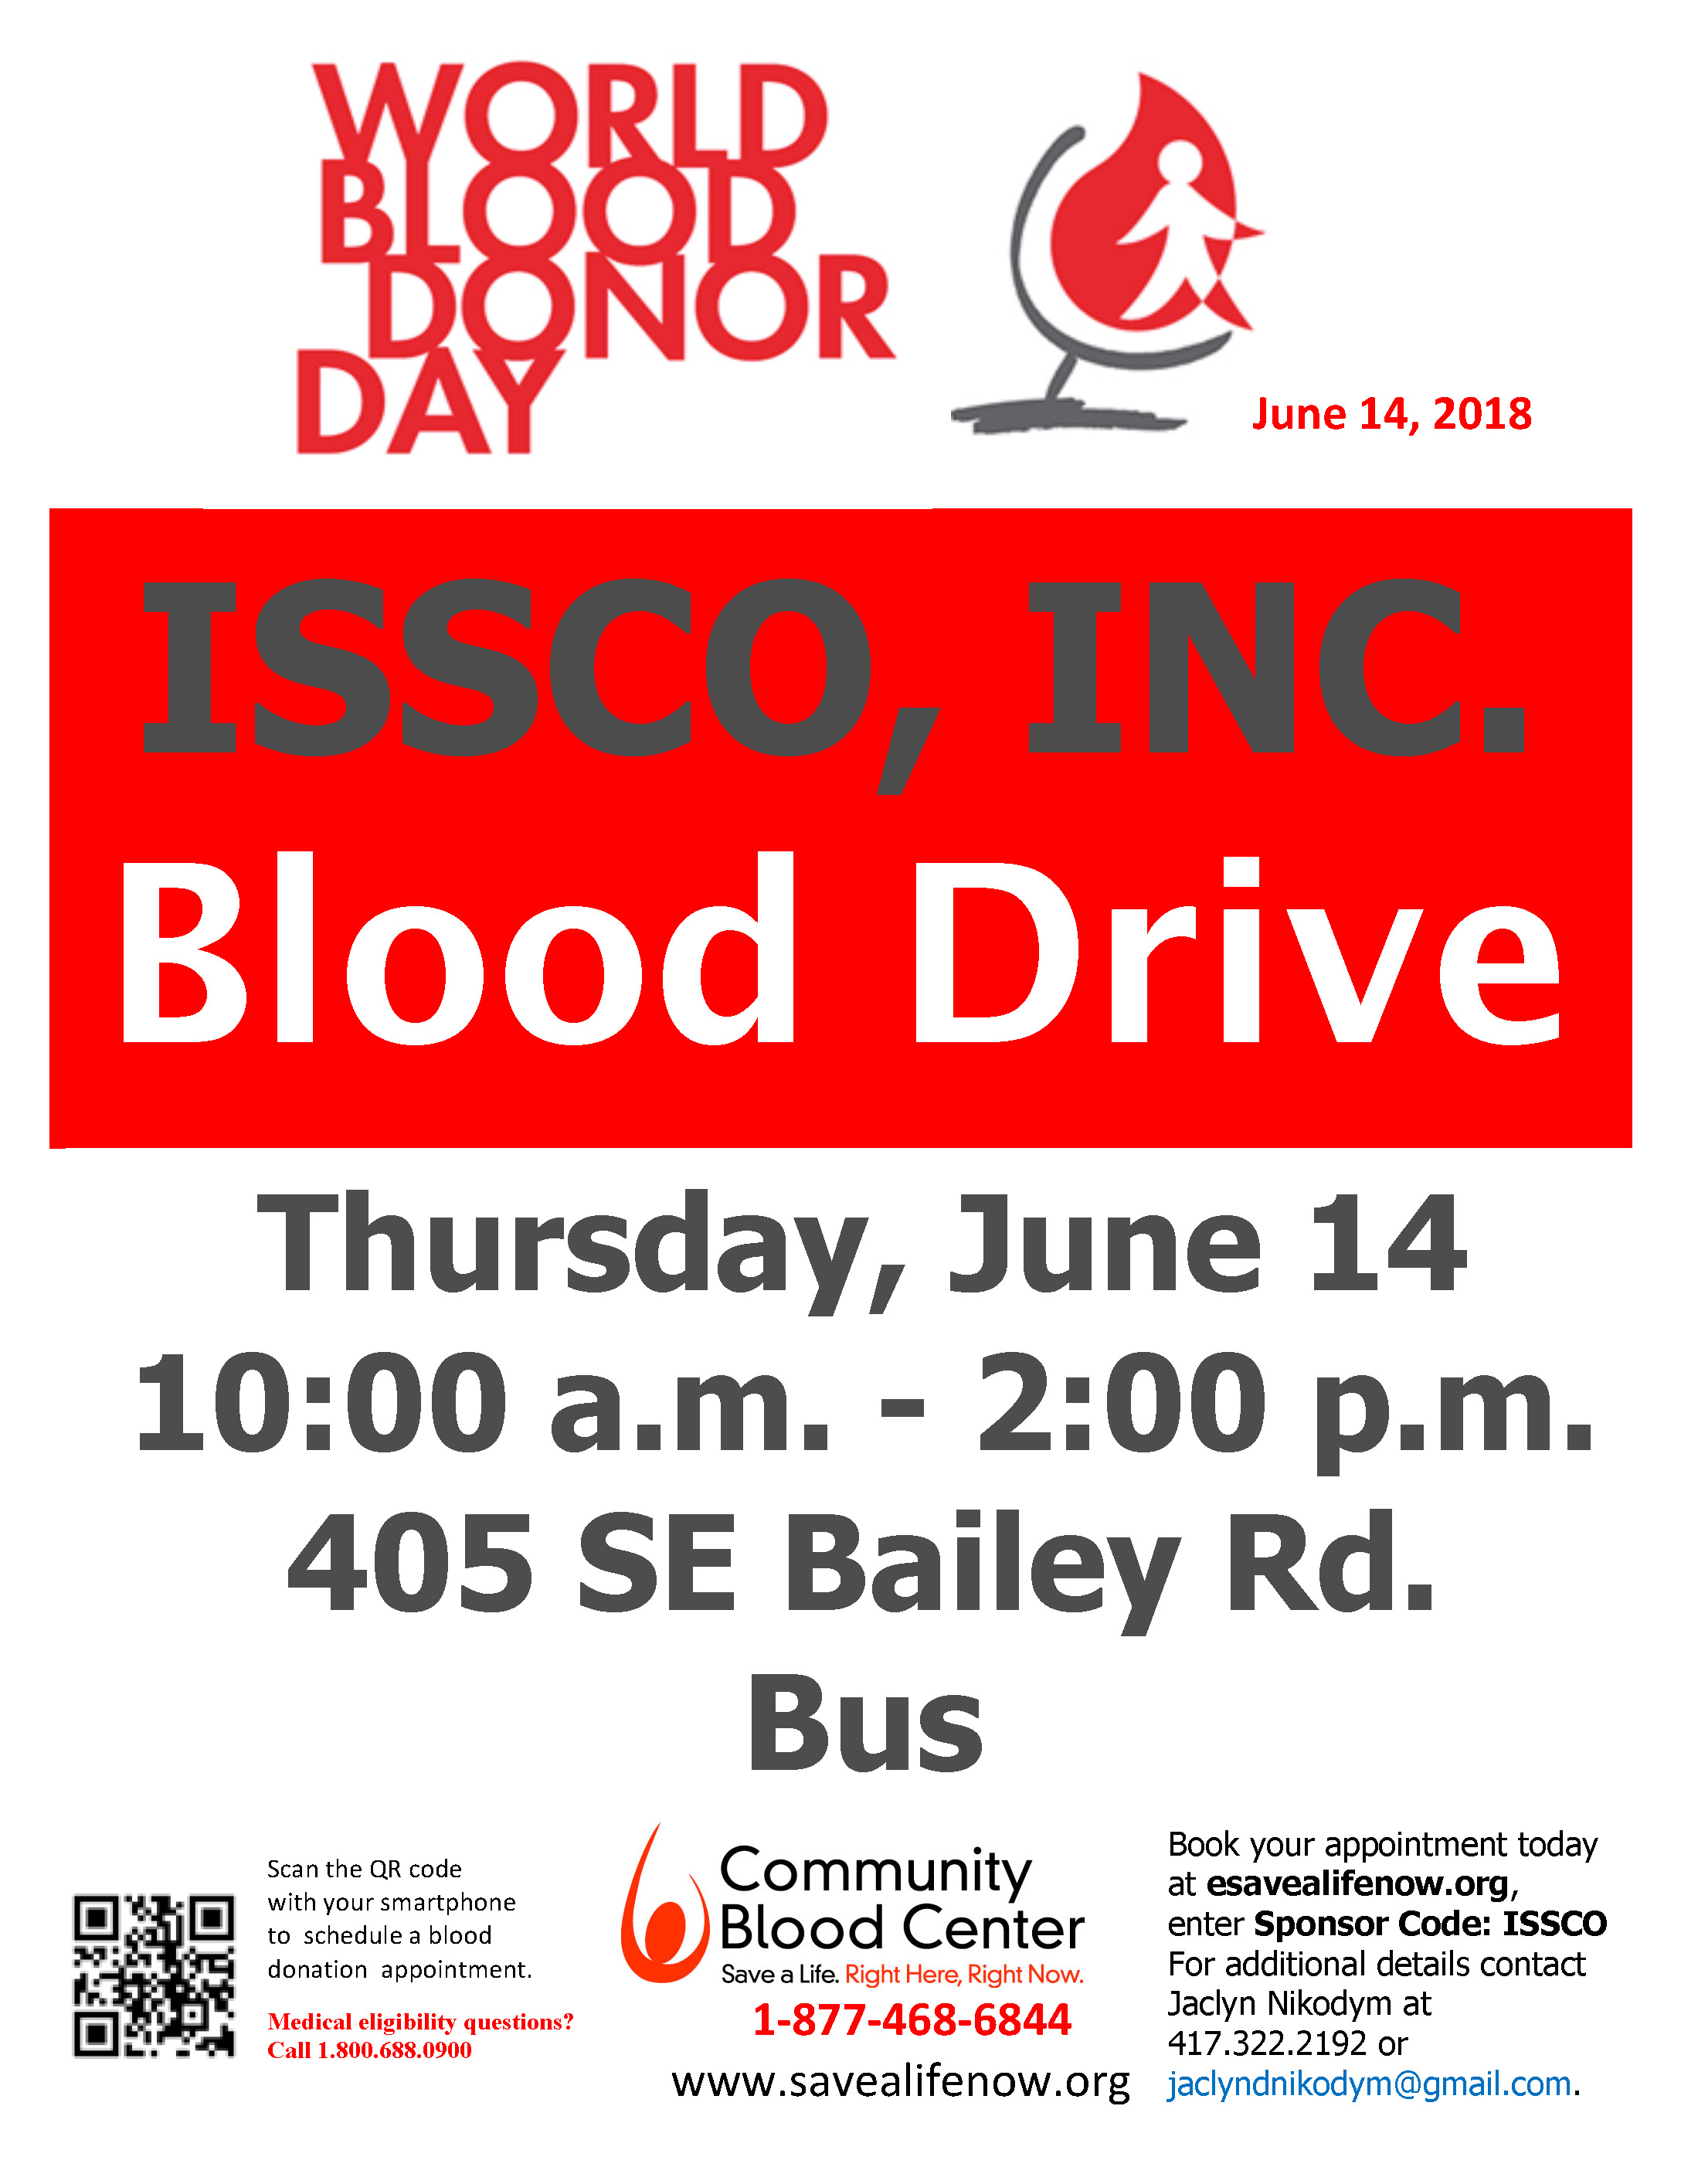 Blood Drive held at ISSCO in Honor of World Blood Donor Day